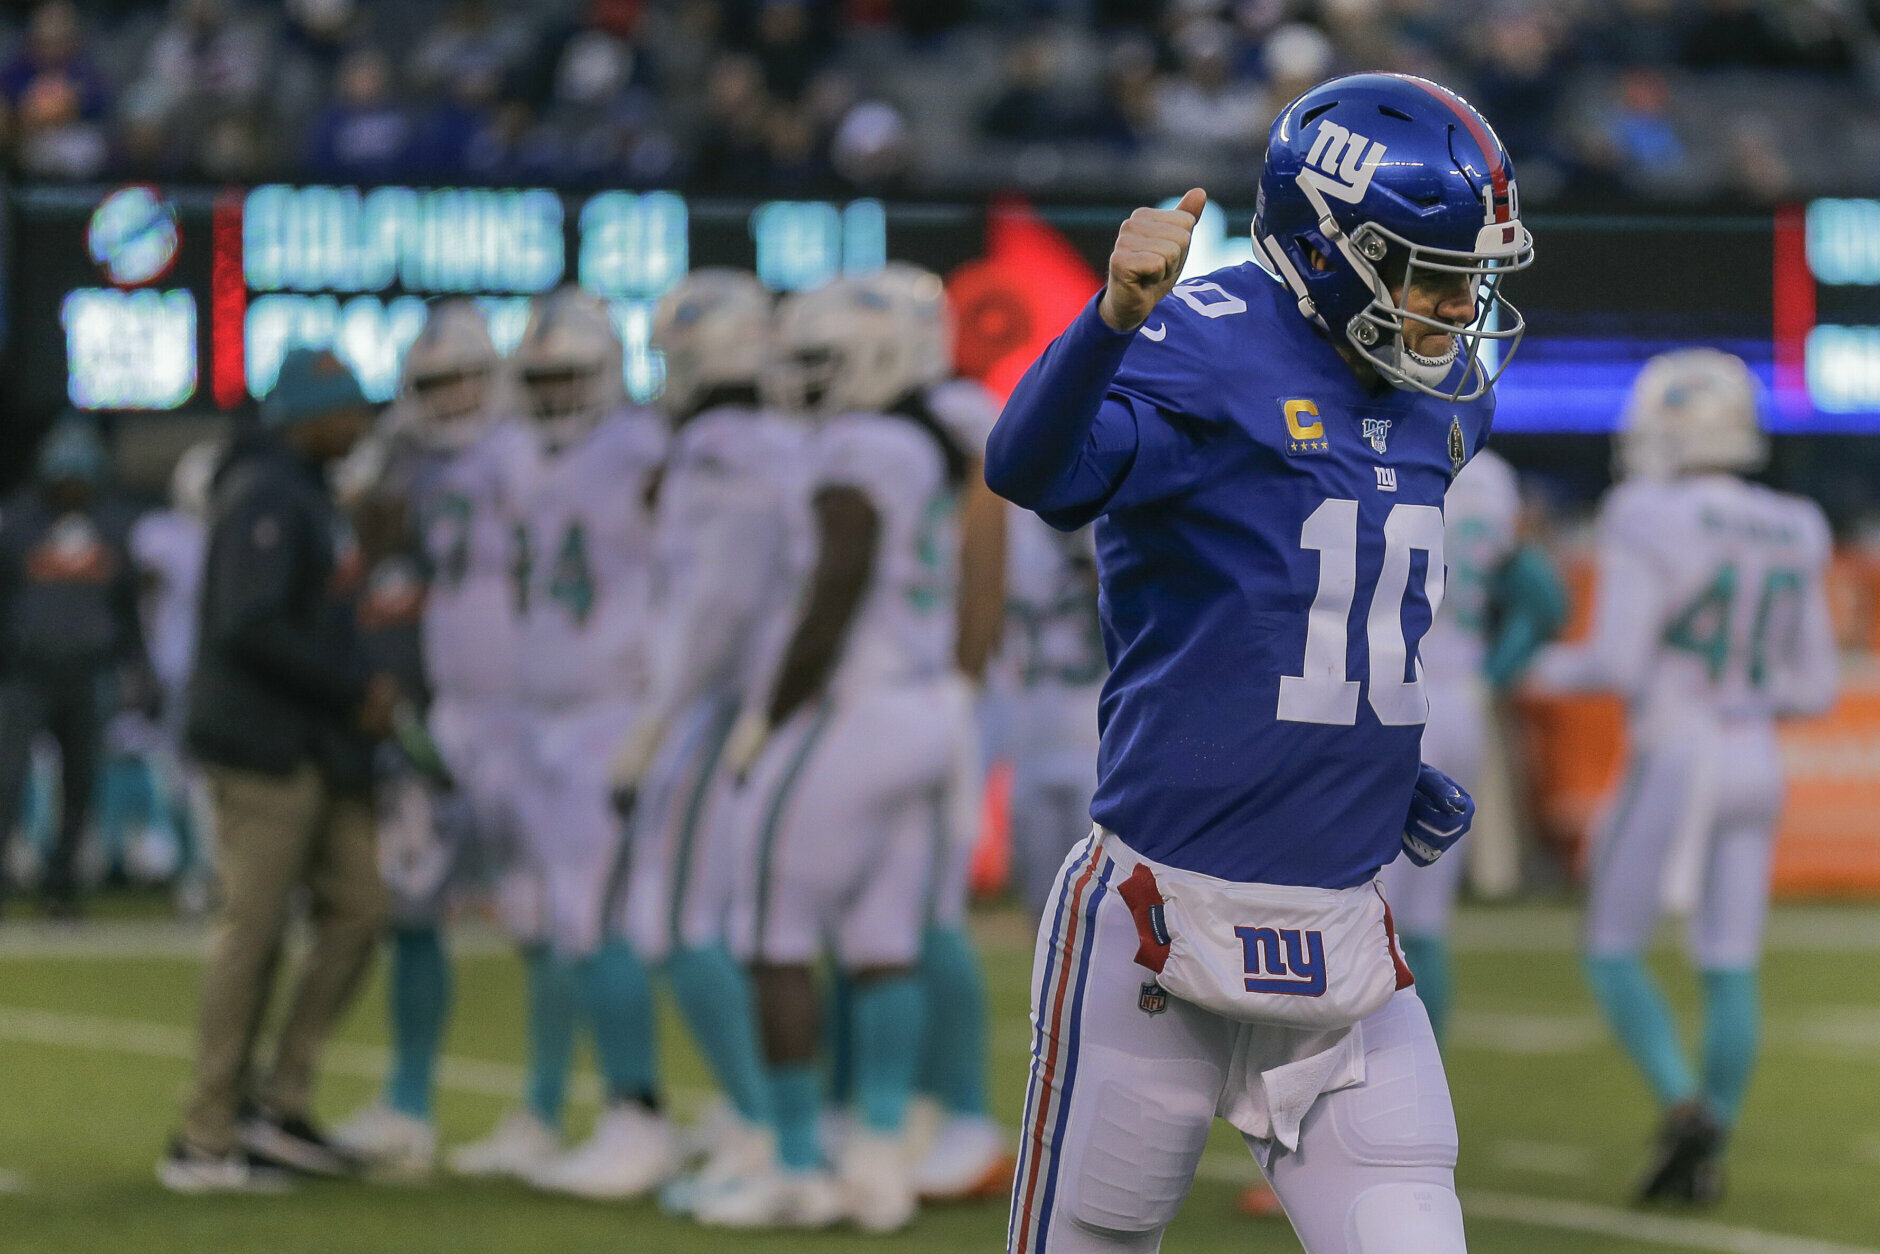 "<p><b><i>Dolphins 20</i></b><br /> <b><i>Giants 36</i></b></p> <p>His three picks aside, Eli&#8217;s farewell was <a href=""https://www.espn.com/nfl/story/_/id/28306976/eli-manning-gets-special-win-giants-likely-final-home-start"" target=""_blank"" rel=""noopener"">a helluva send-off</a> for a guy with a career .500 record and was really the catalyst for only one of the two Super Bowl runs he was a part of. Yeah, I said it.</p>"